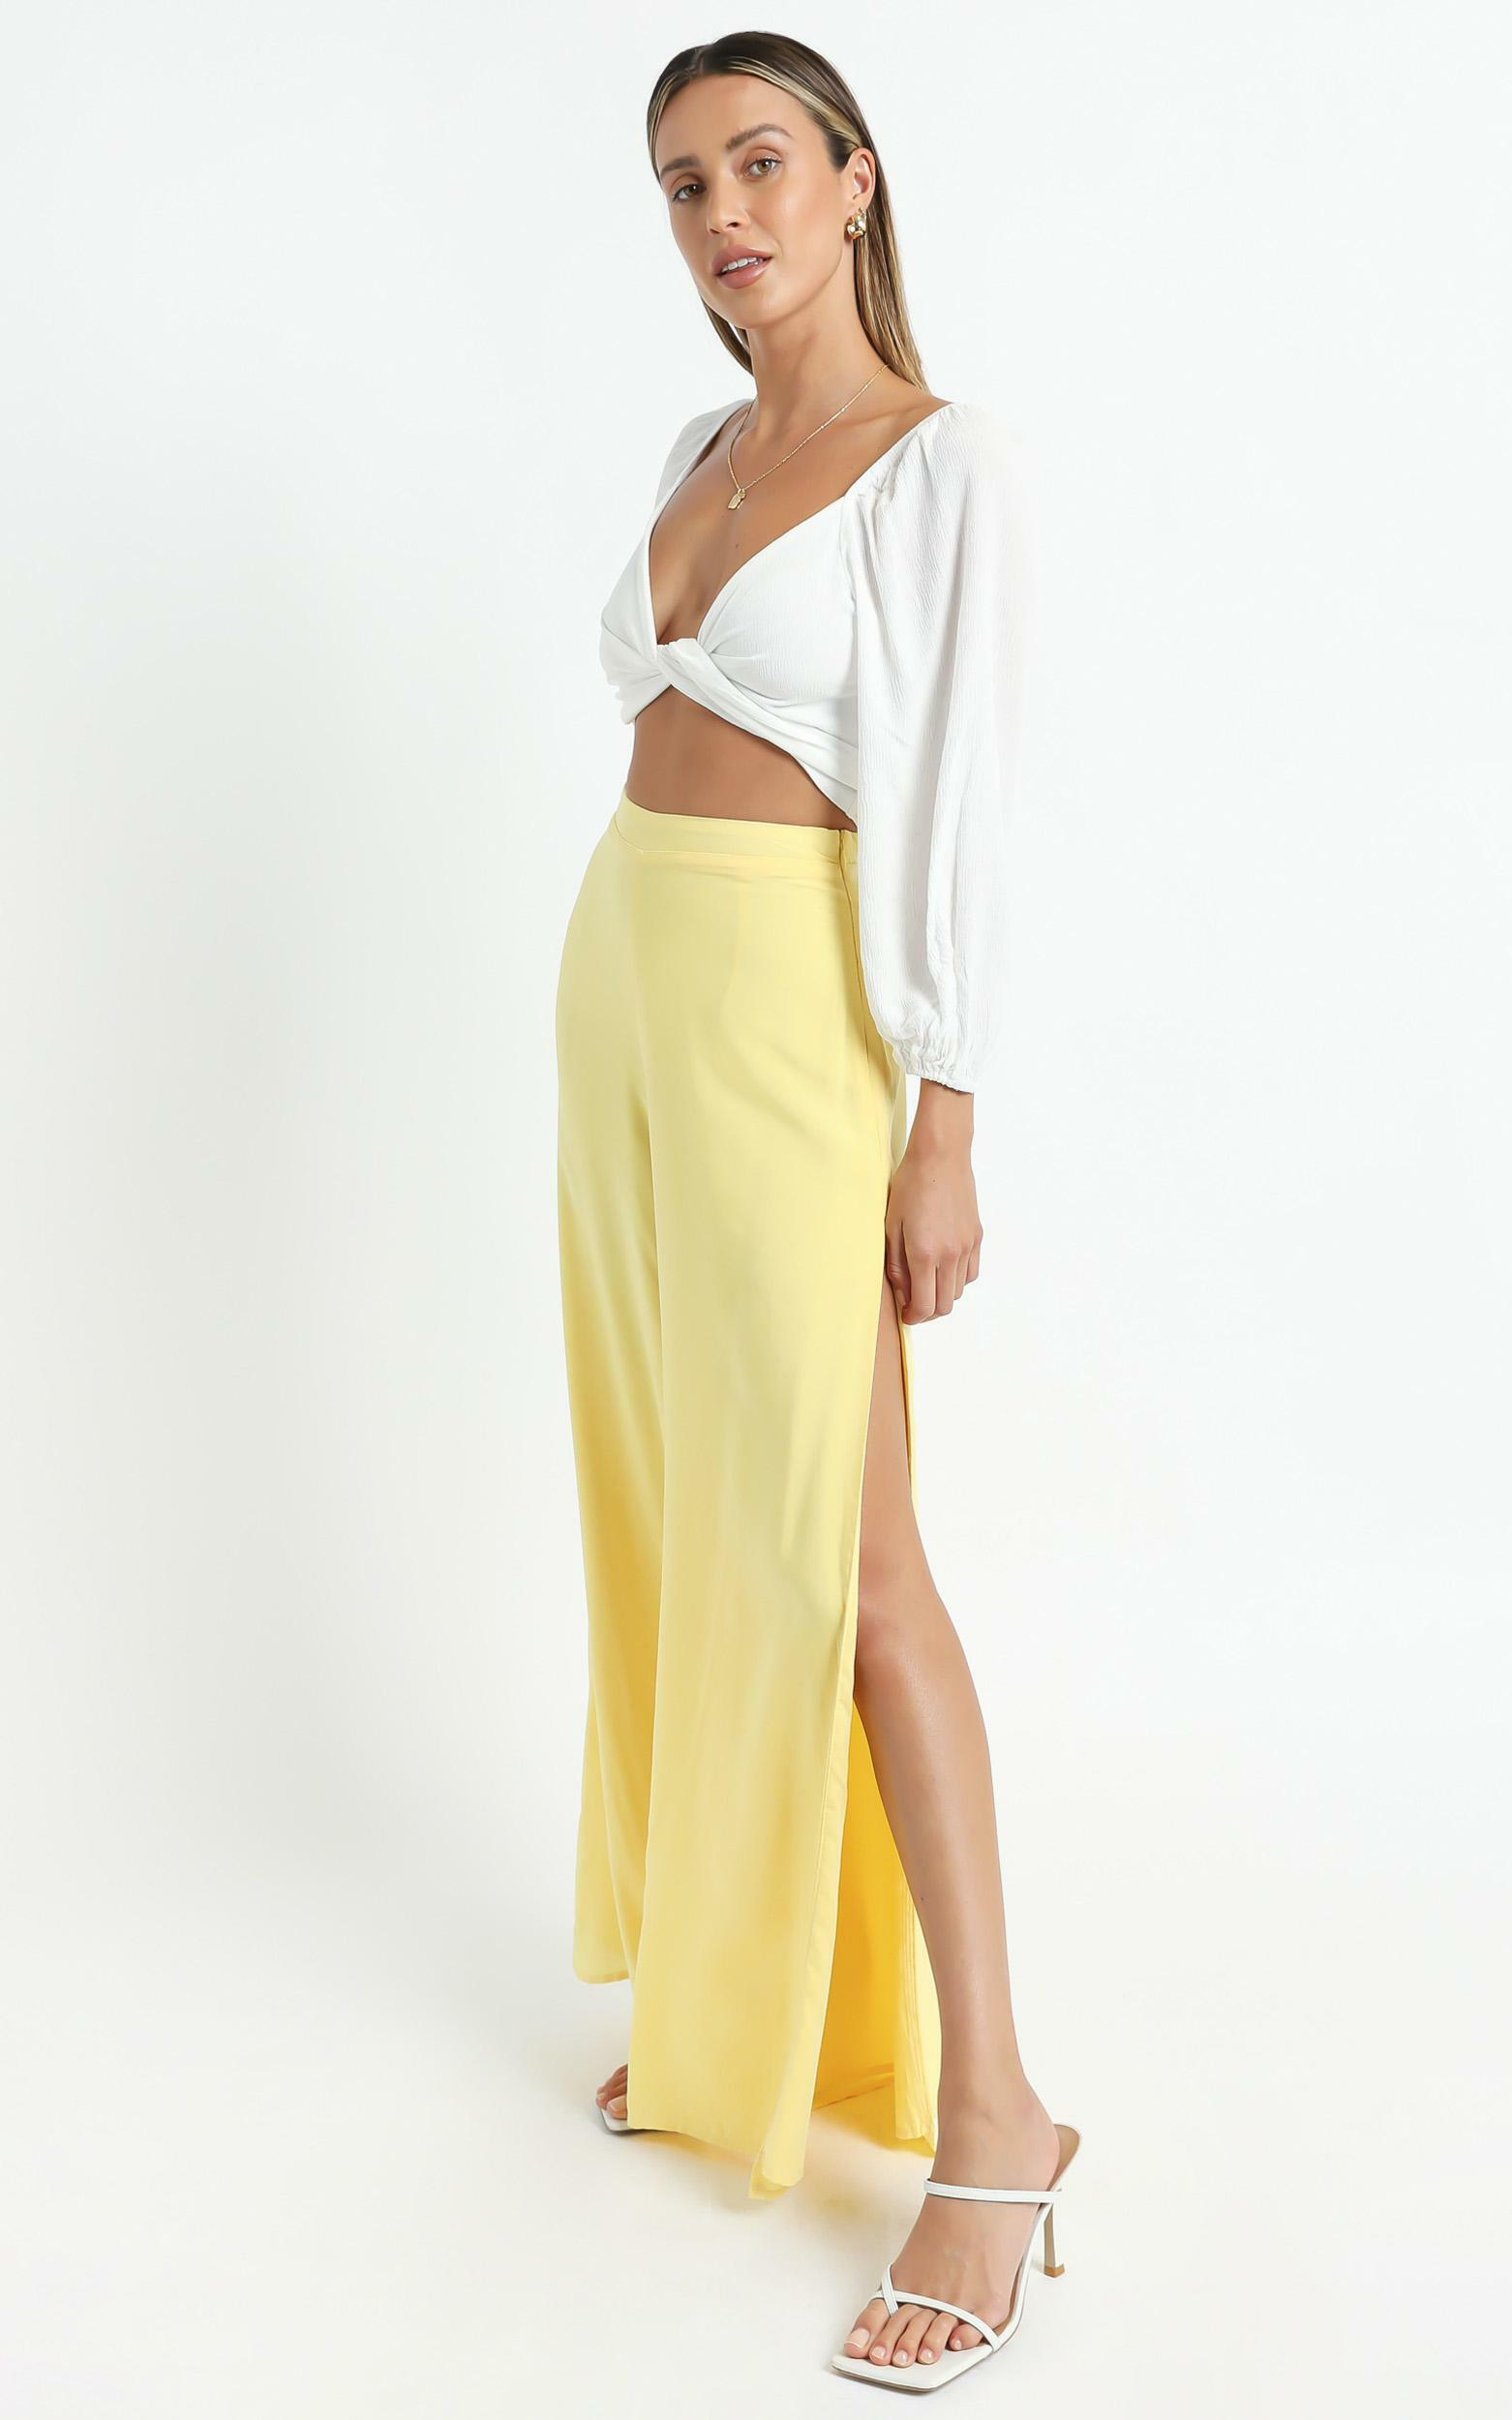 Narissa Pants in Lemon - 6 (XS), Yellow, hi-res image number null